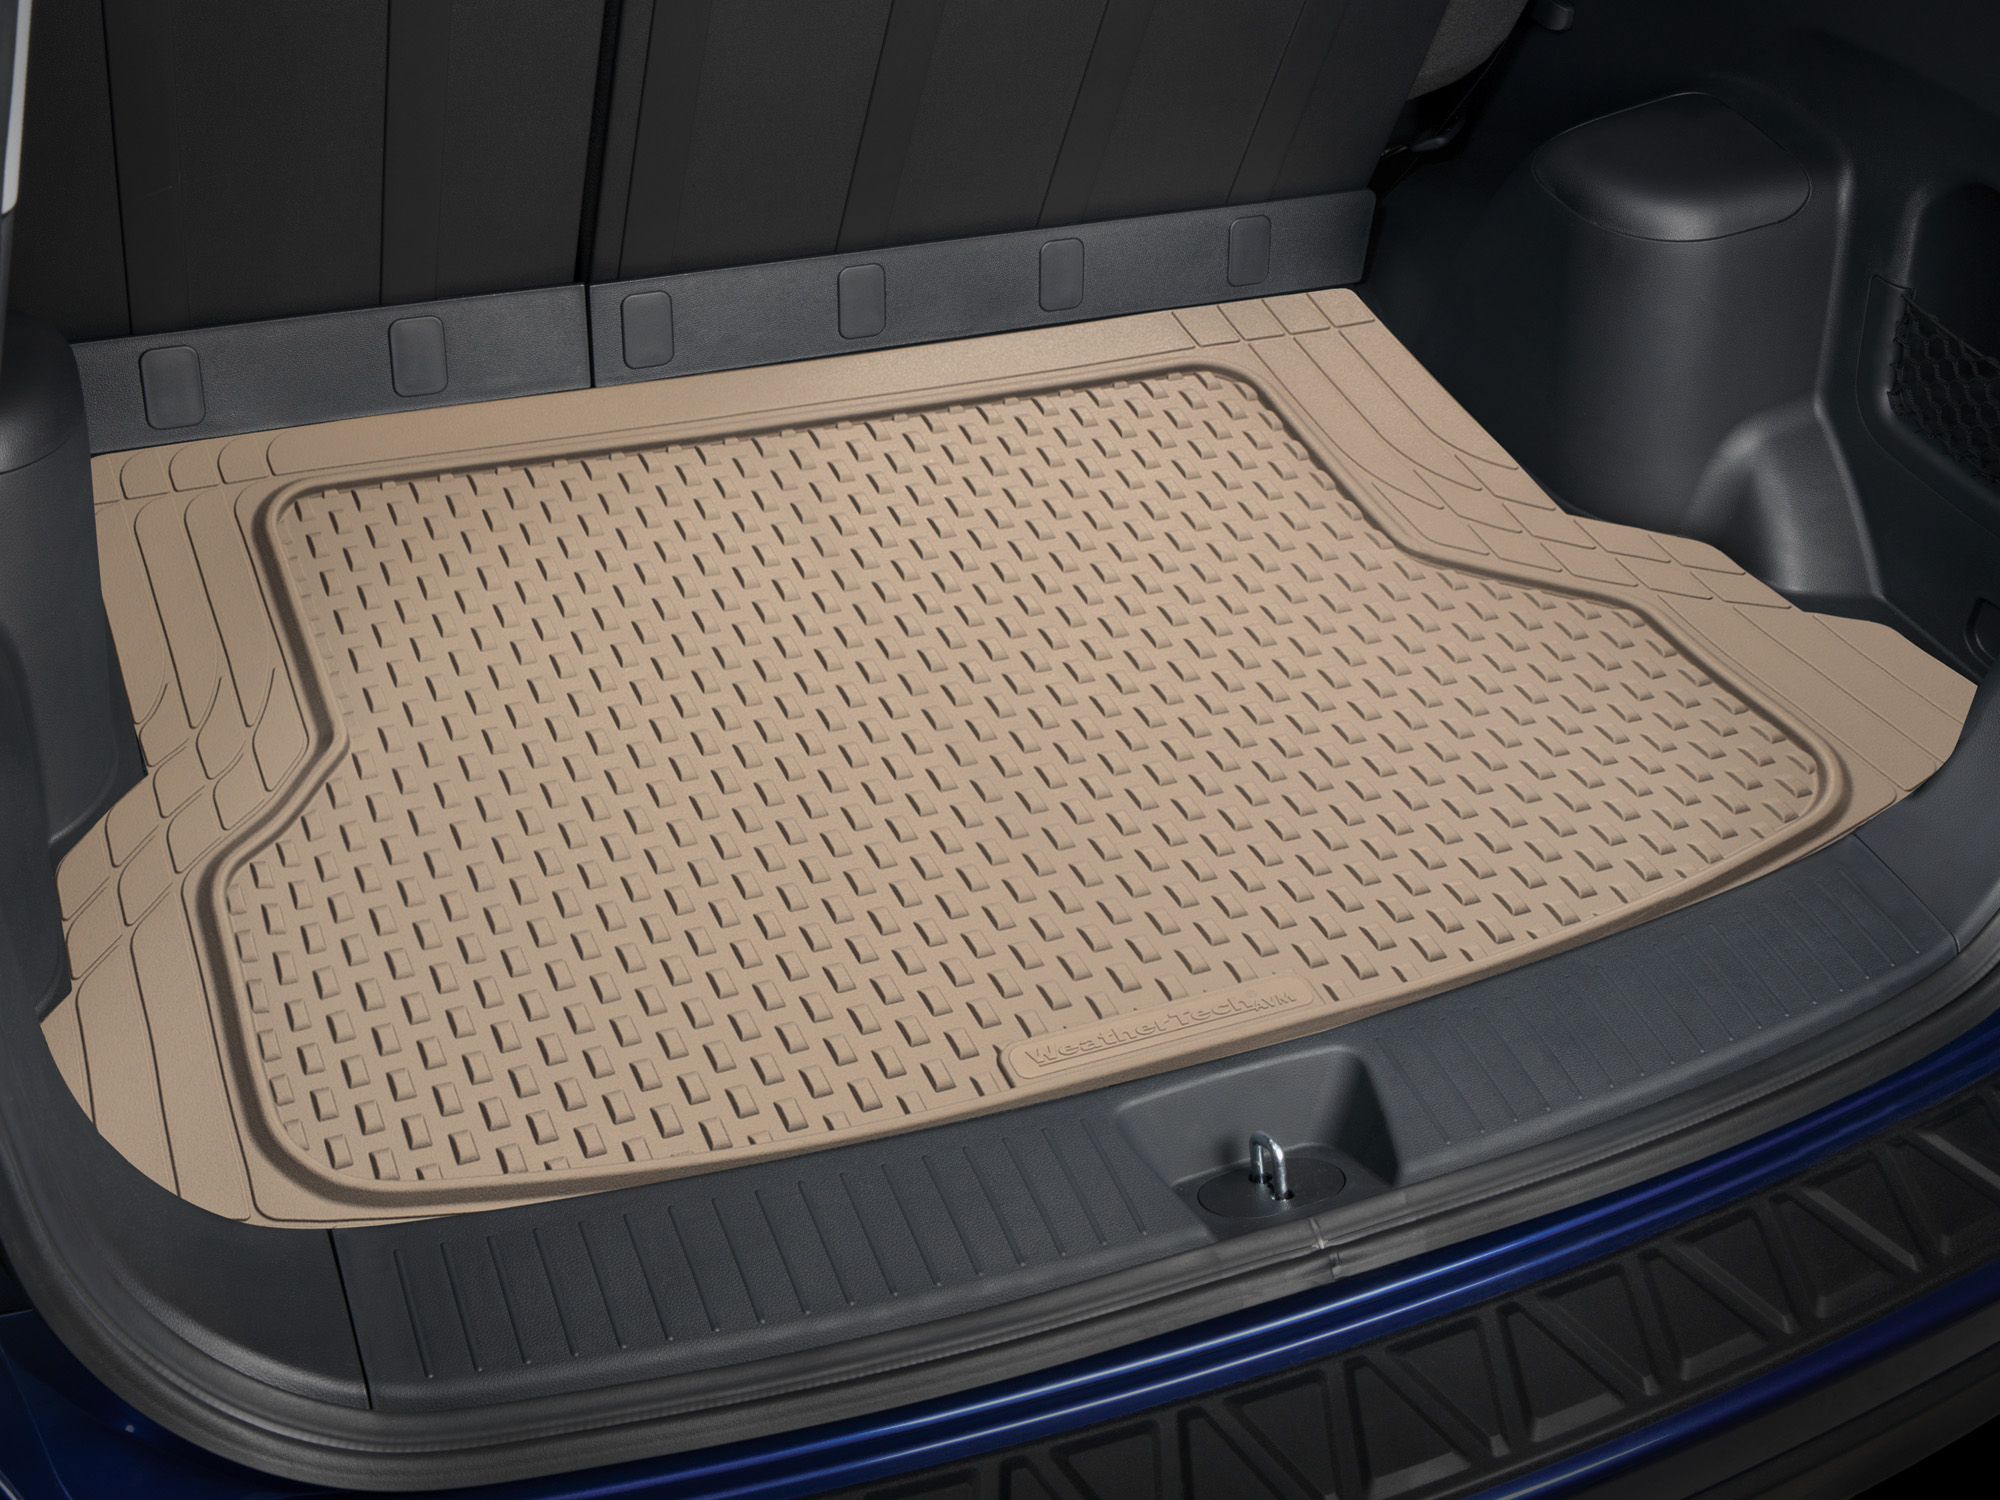 Szolo a mikroban  plazma 181 - Weathertech Floor Mats Burlington Weathertech Custom Fit Car Mats Floor Mats Trunk Liners Window Deflectors